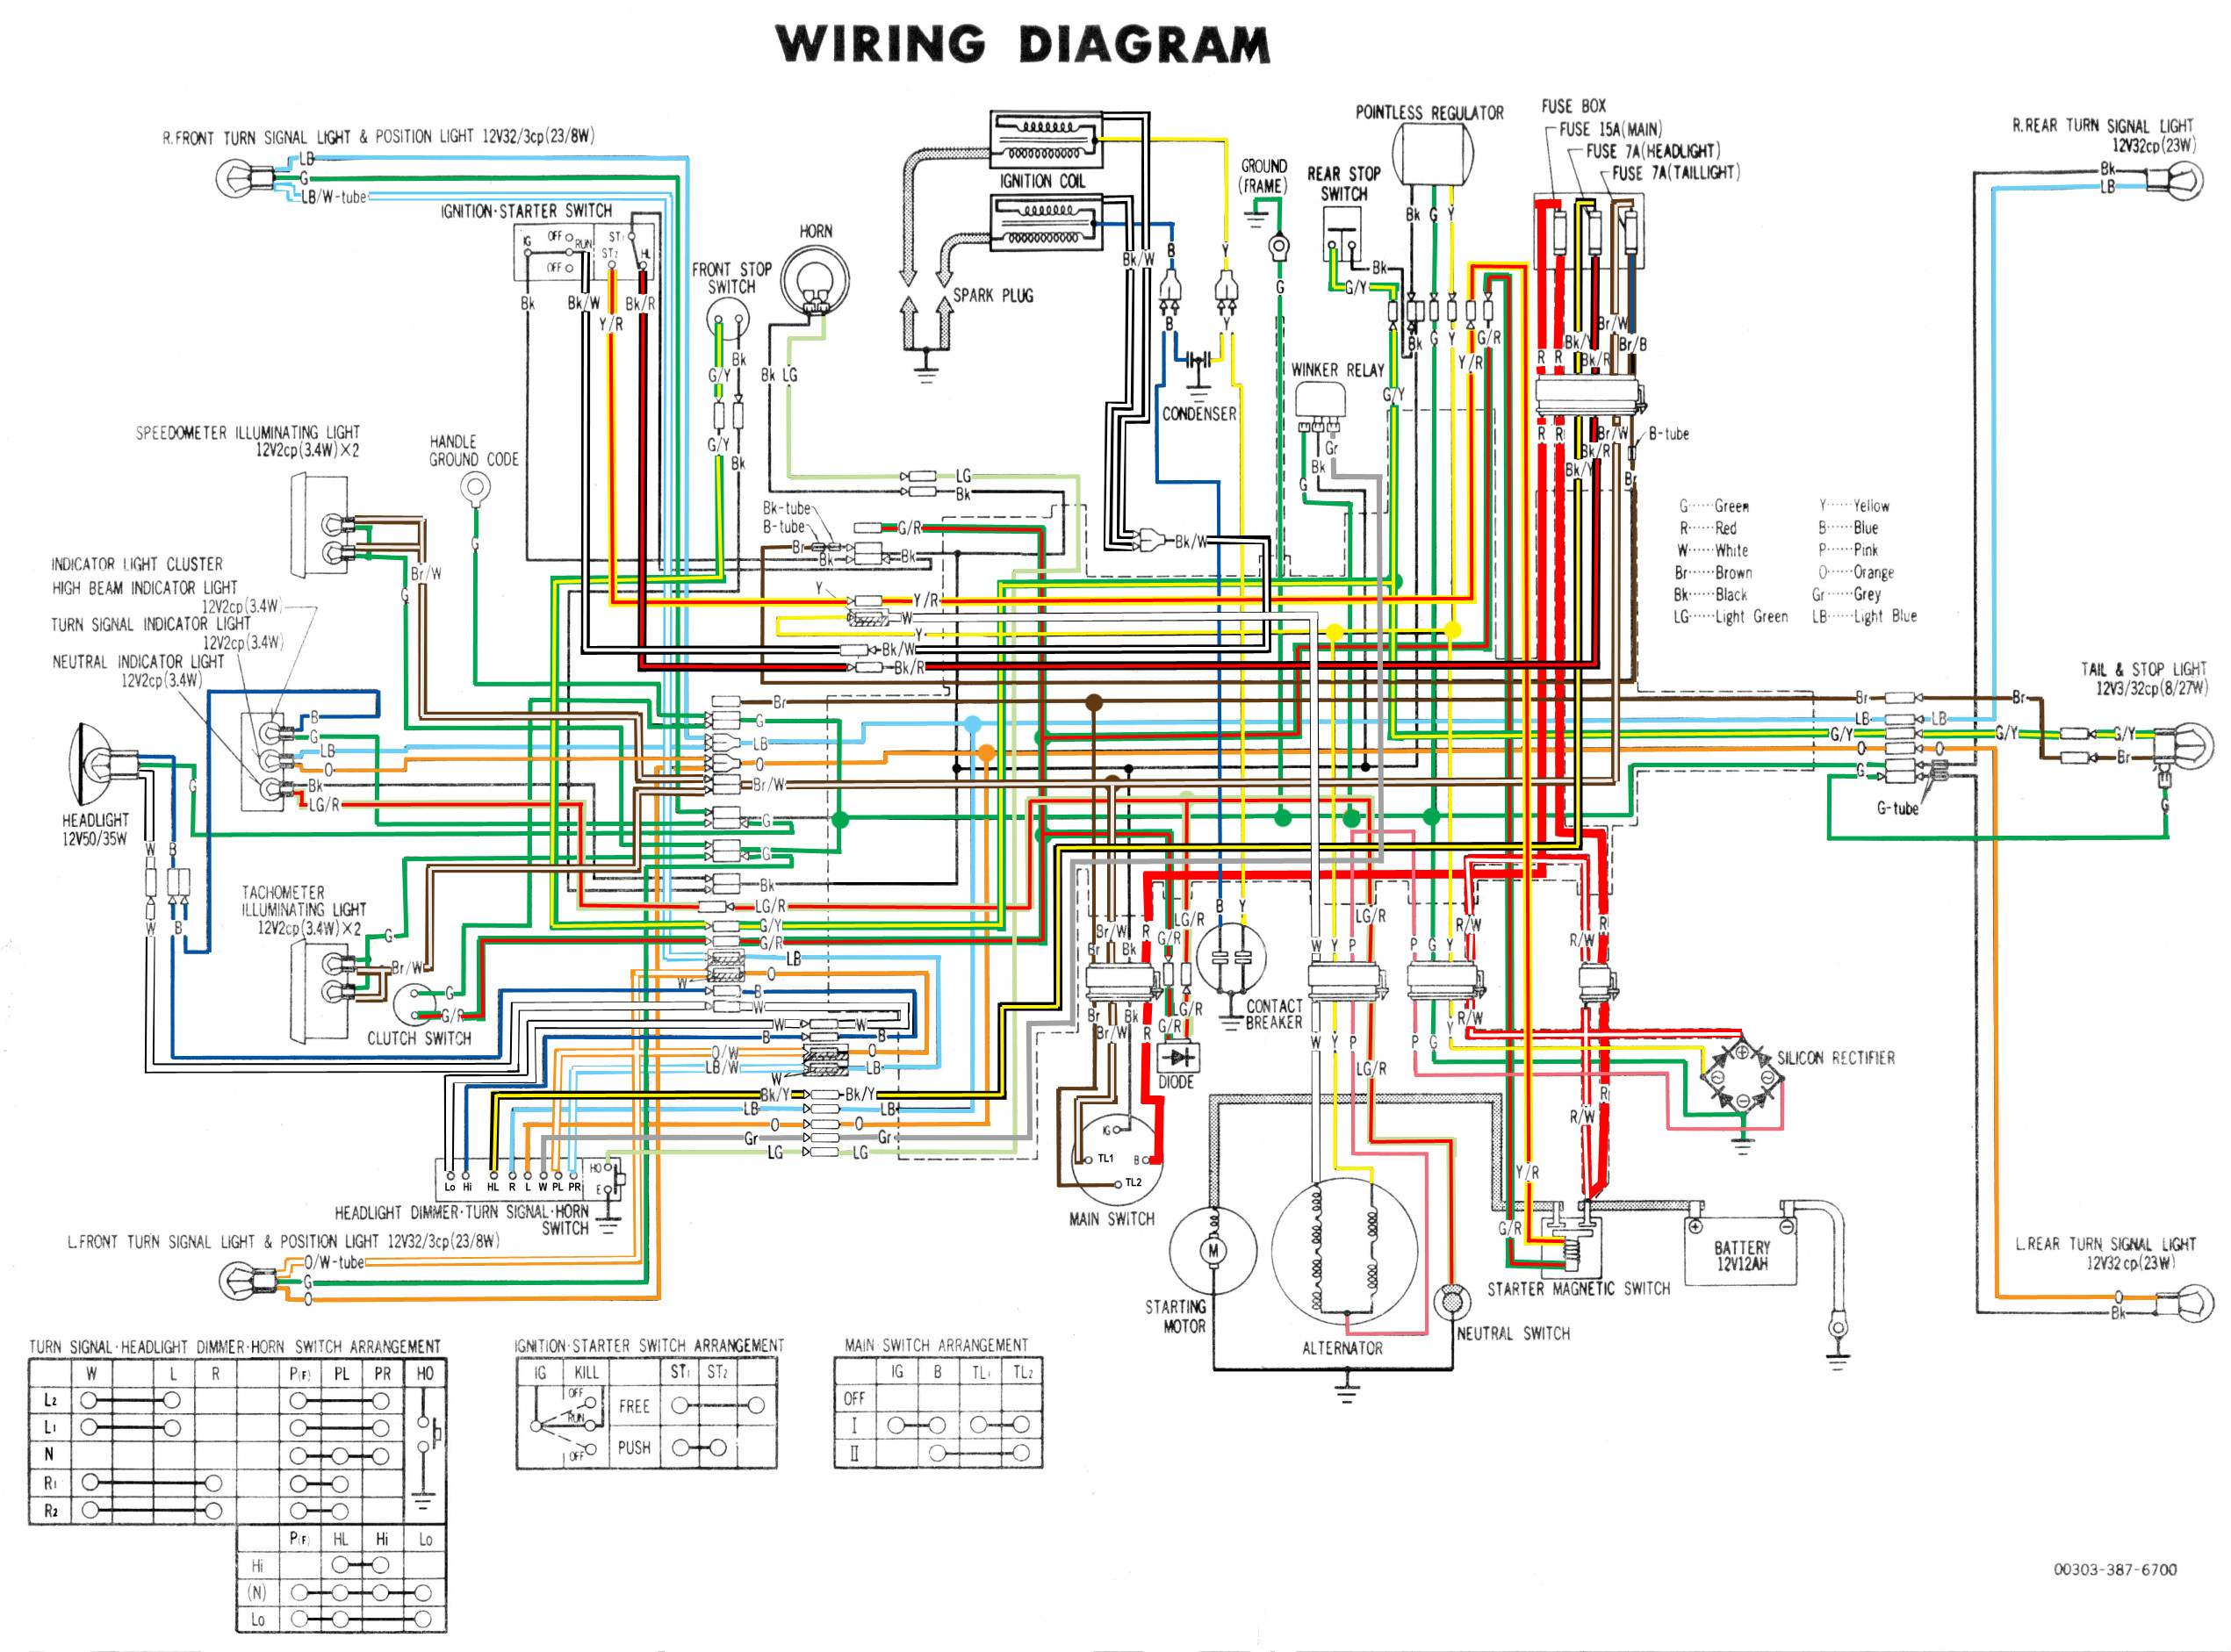 Cb360 Wiring Harness Diagram Diagrams Cb750 Schematic Cheap Regulator Rectifier Upgrade Page 43 1975 Honda